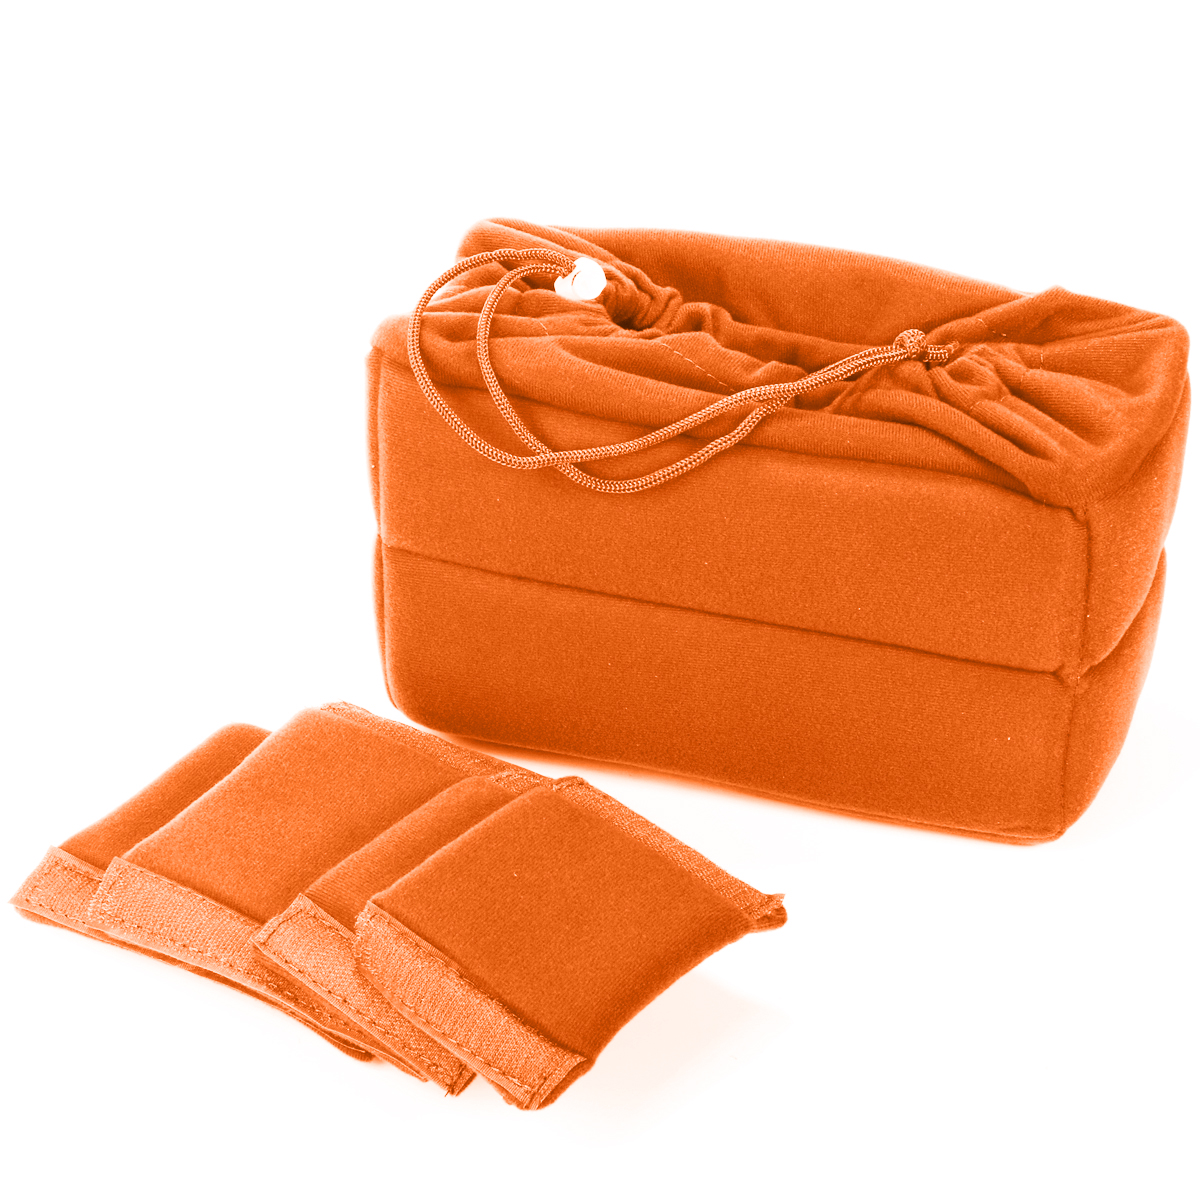 High Quality Professional Photographer Flexible Camera Insert Bag Partition Padded Case for Nikon DSLR SLR Orange LF676(China (Mainland))